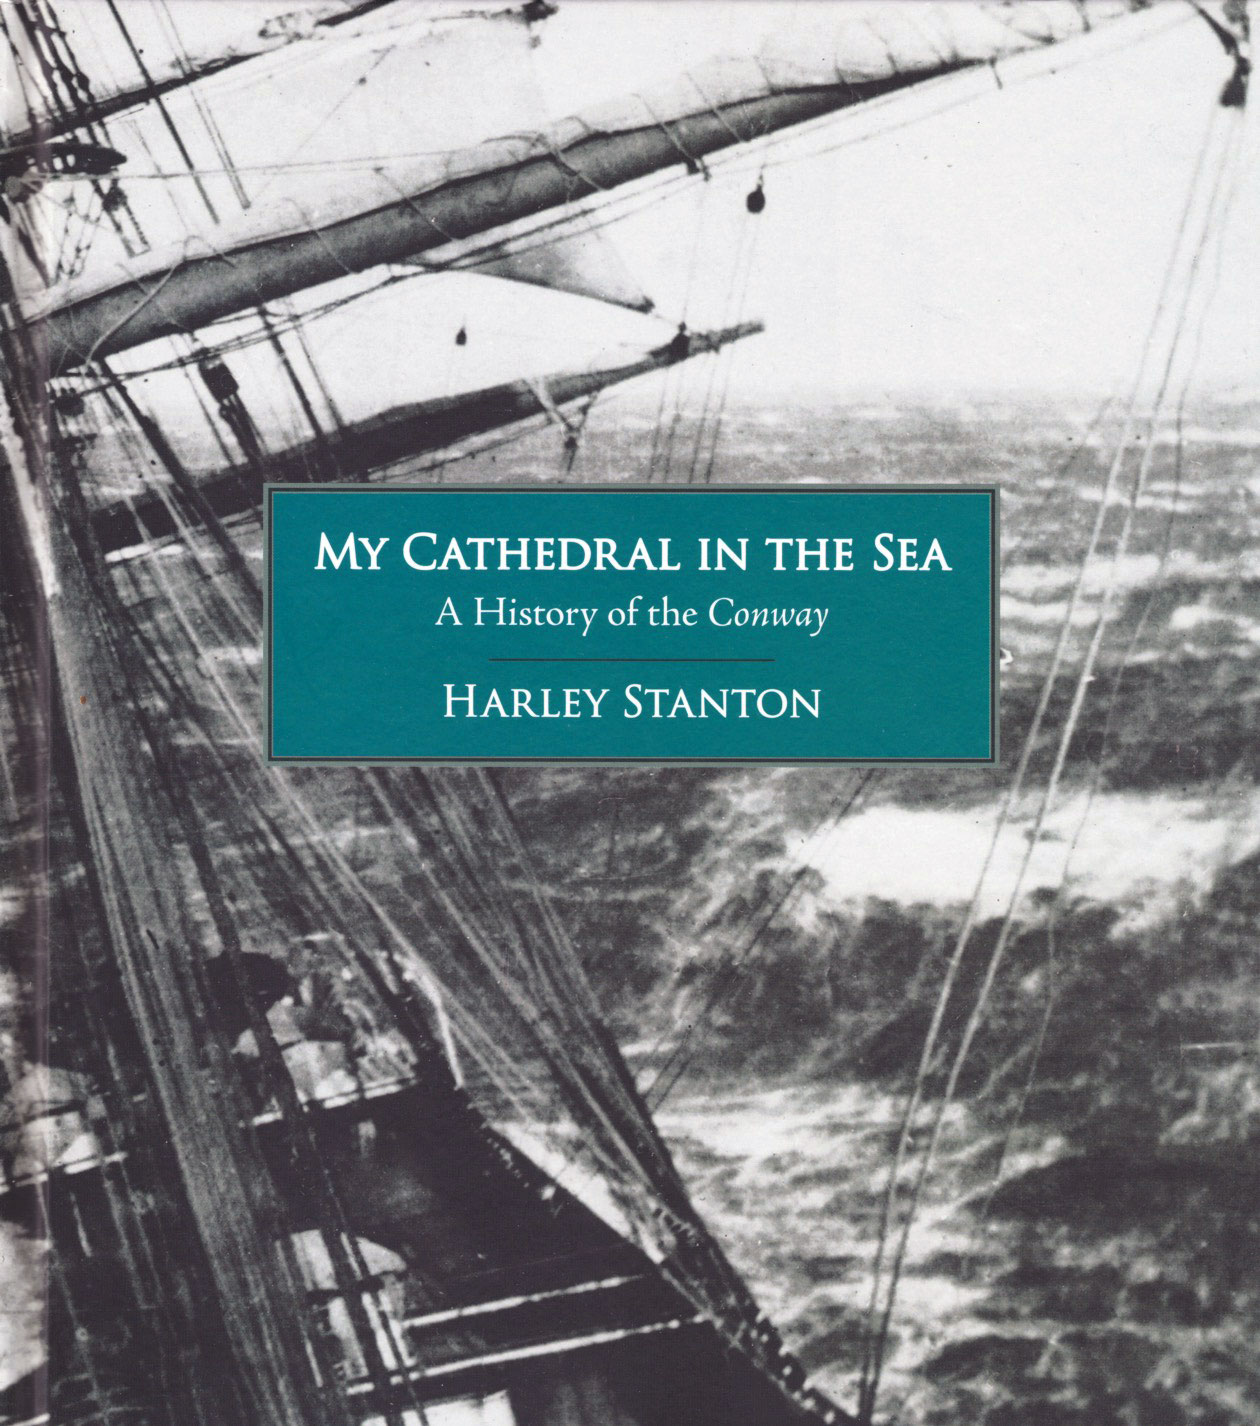 My Cathedral in the Sea